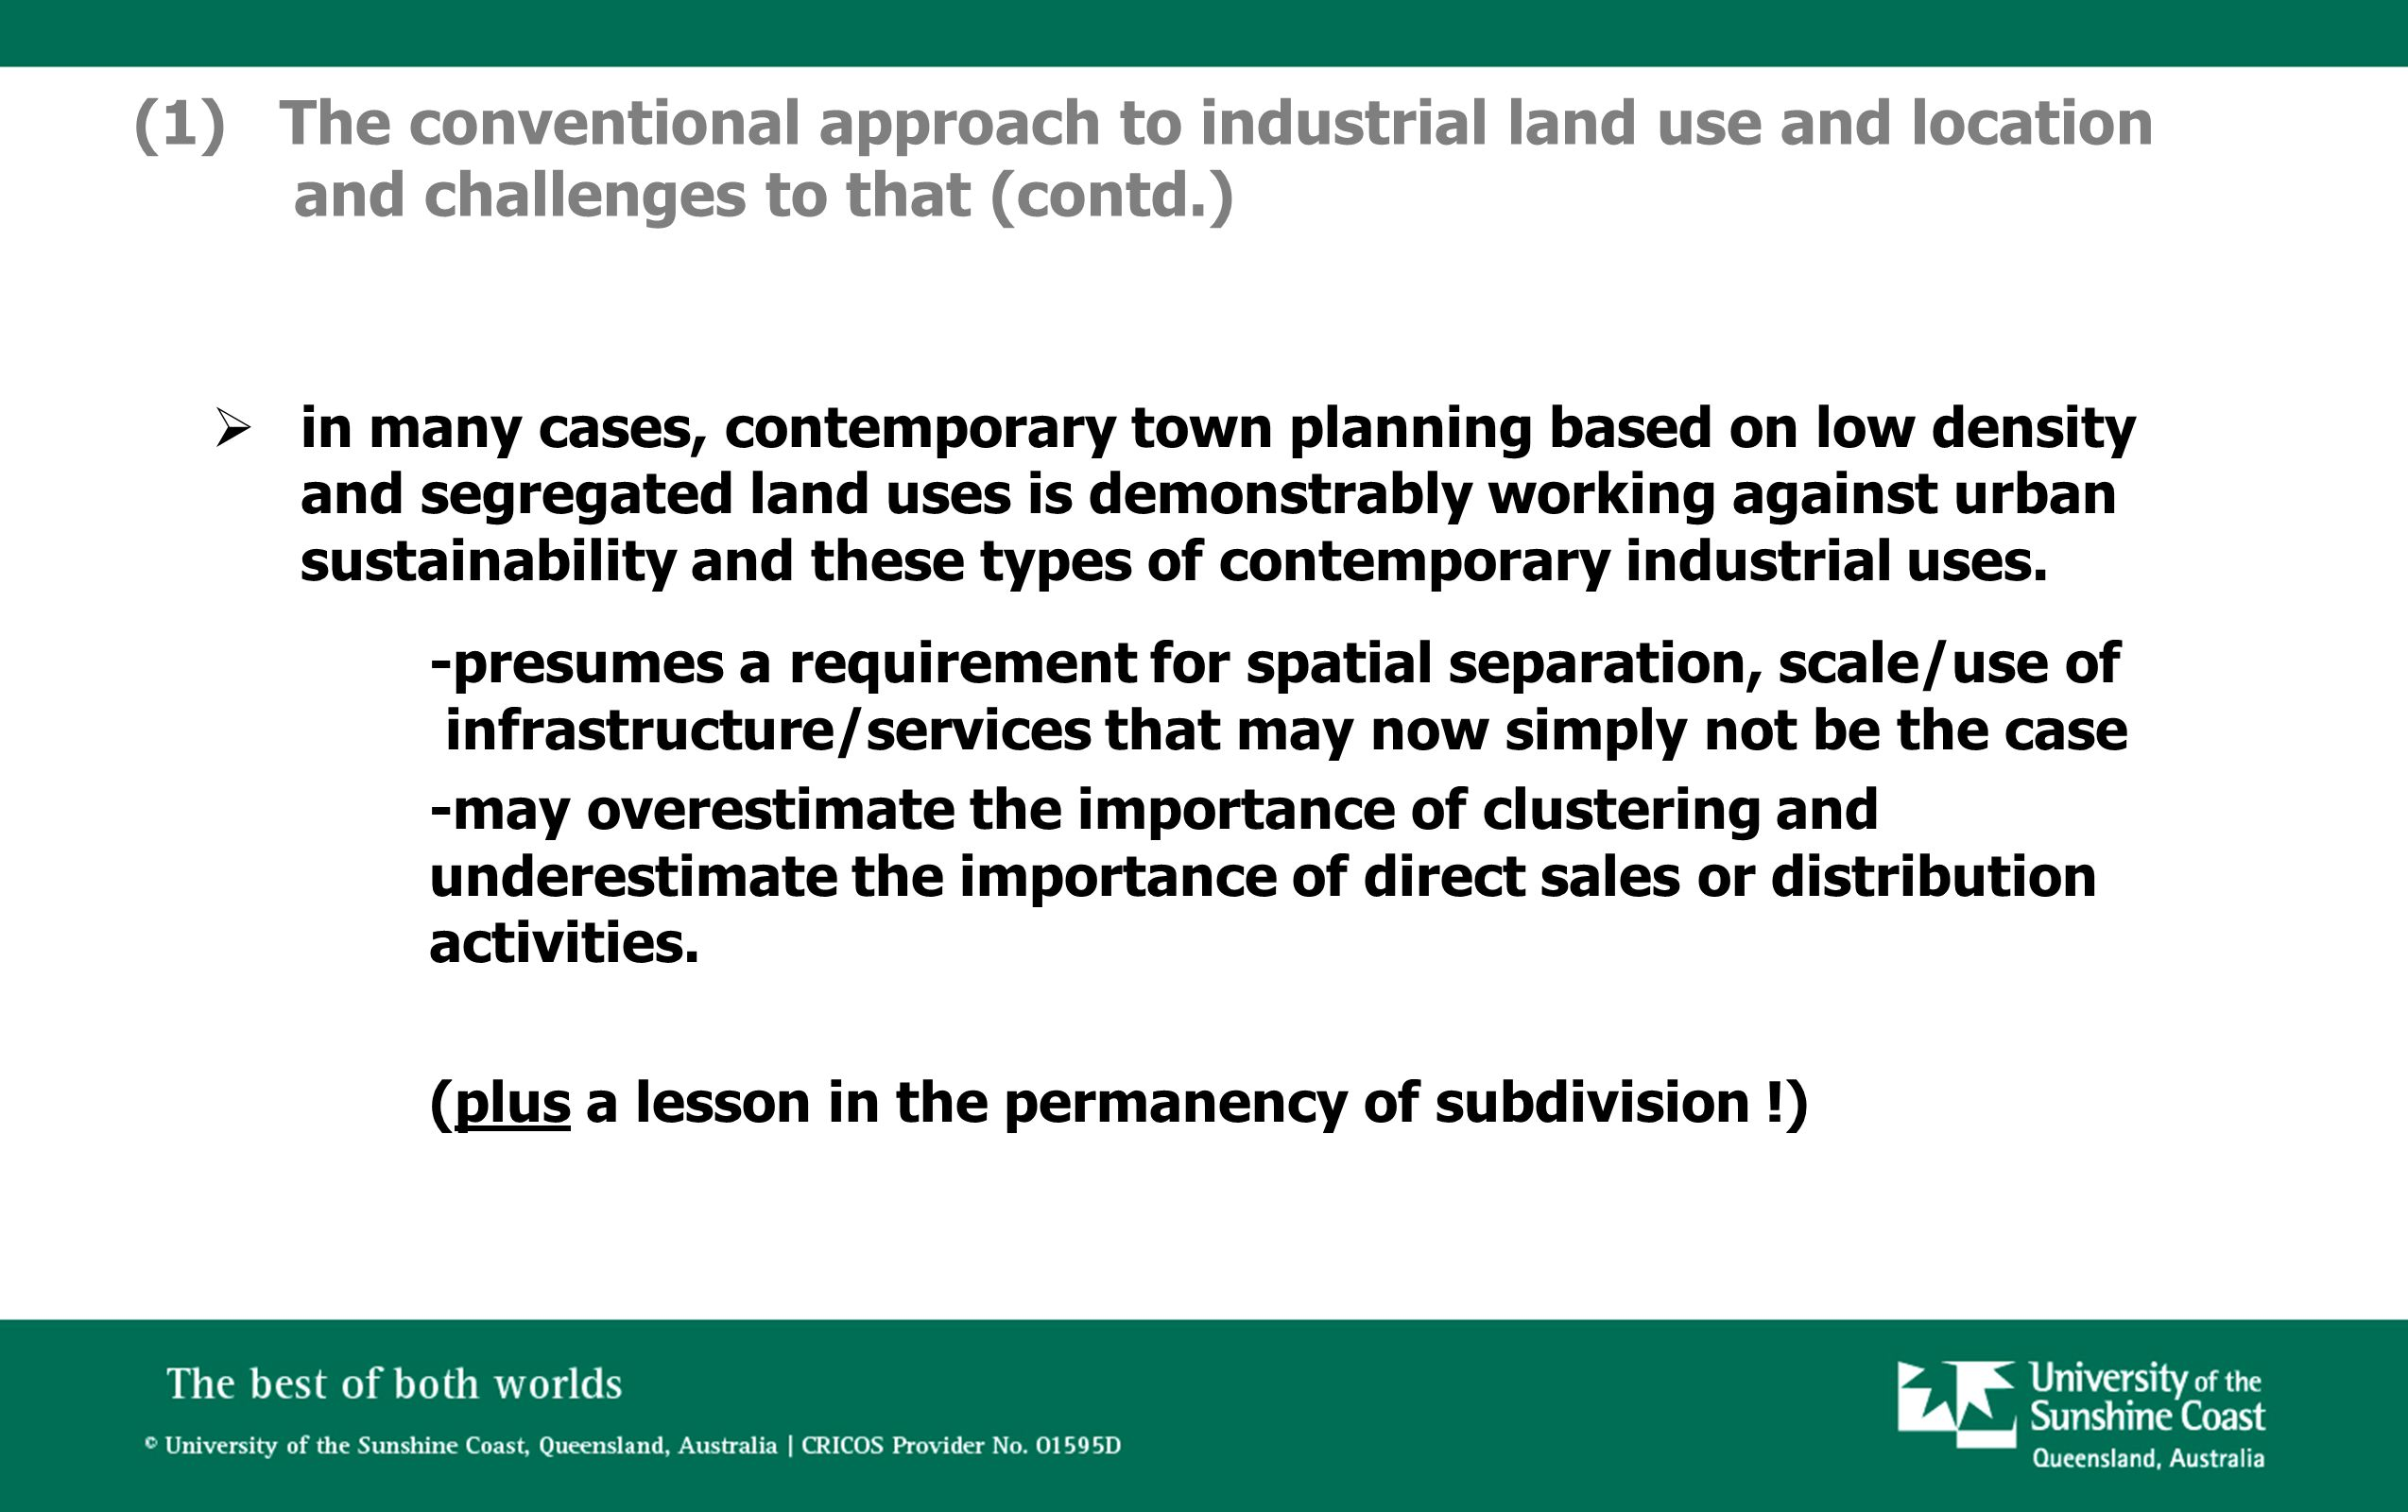  in many cases, contemporary town planning based on low density and segregated land uses is demonstrably working against urban sustainability and these types of contemporary industrial uses.